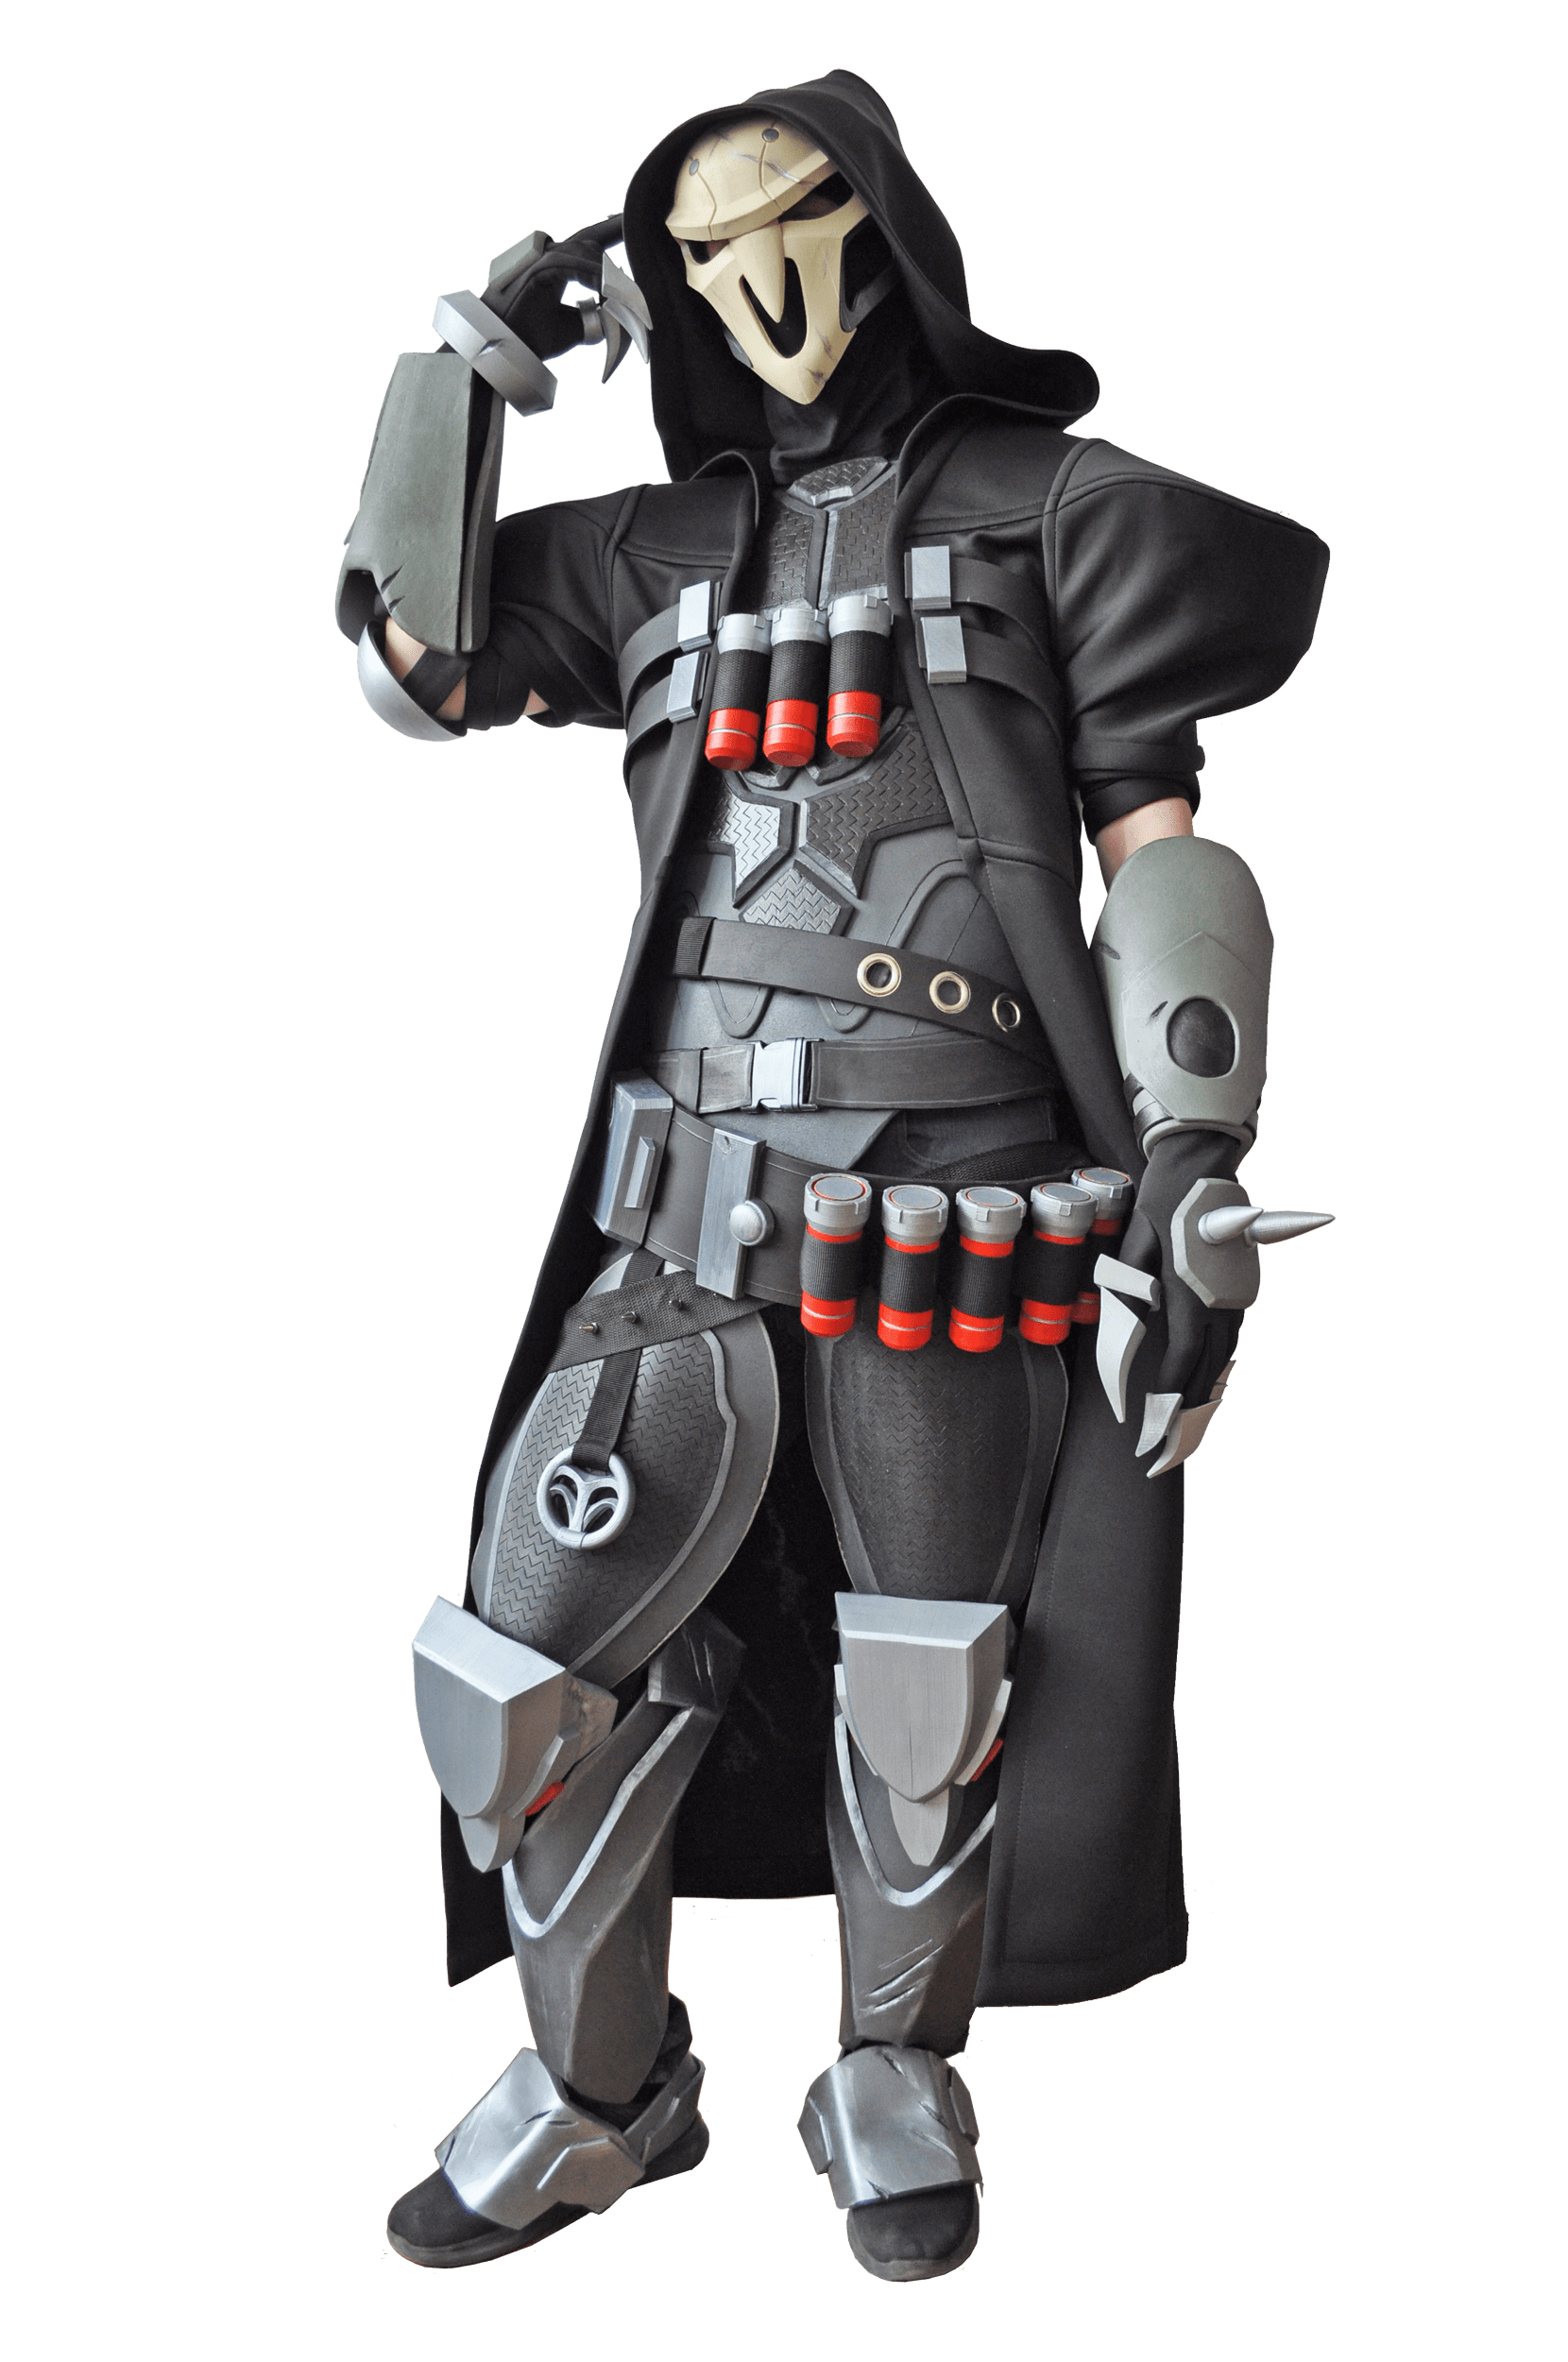 Overwatch cosplay for sale